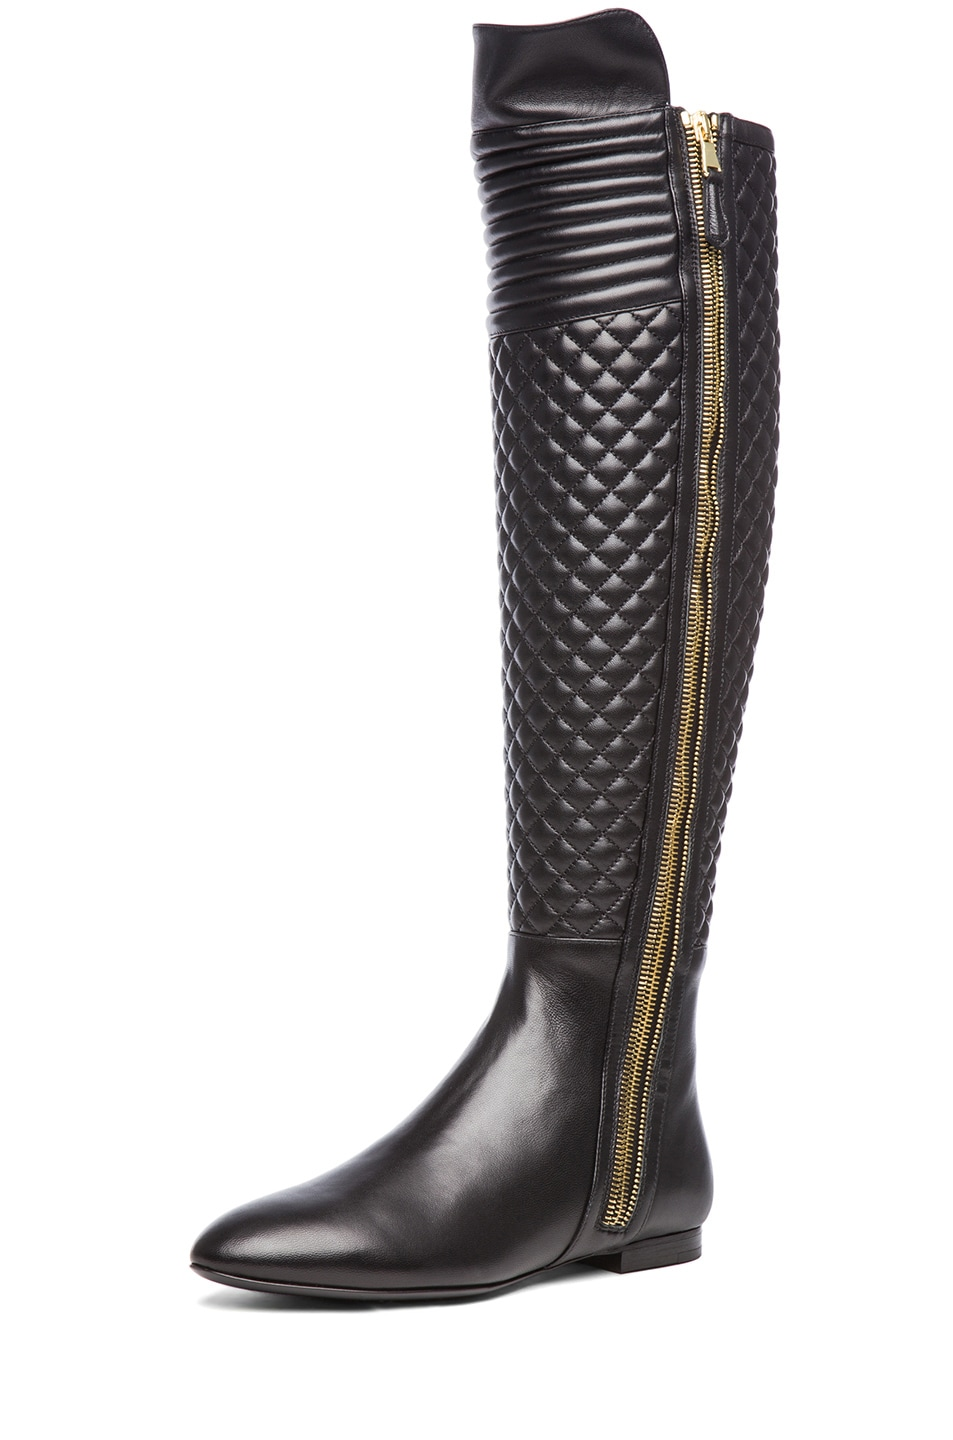 Image 2 of Brian Atwood Ares Nappa Leather Boot in Black